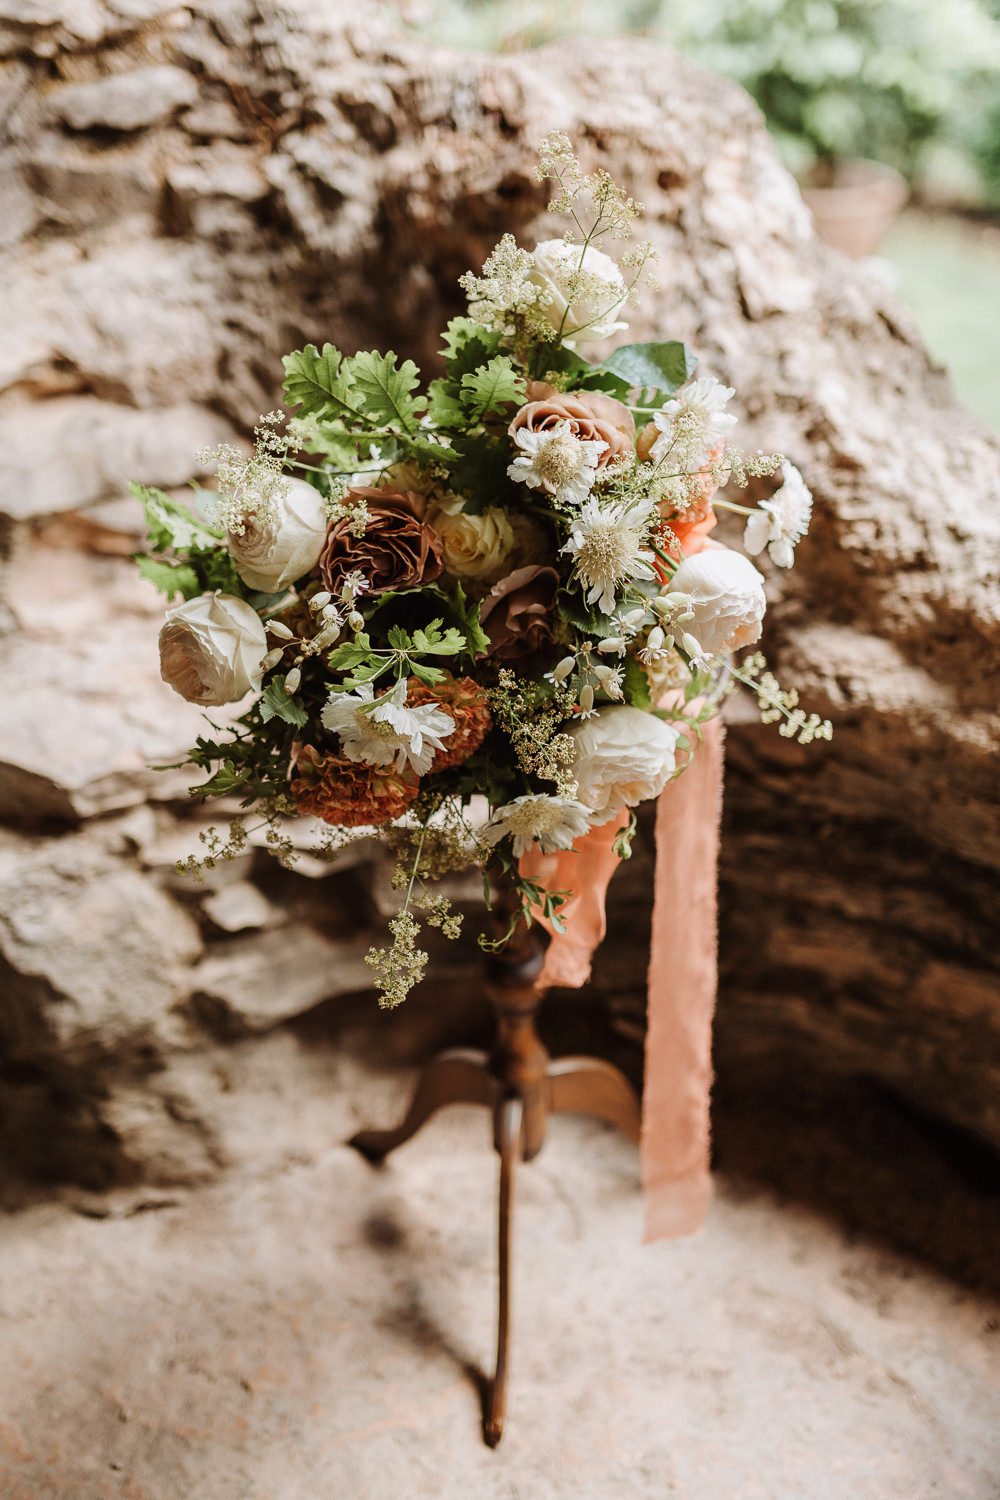 Bouquet Flowers Bride Bridal Peach Rose Greenery Ribbon Natural Wedding Ideas Frame Of Love